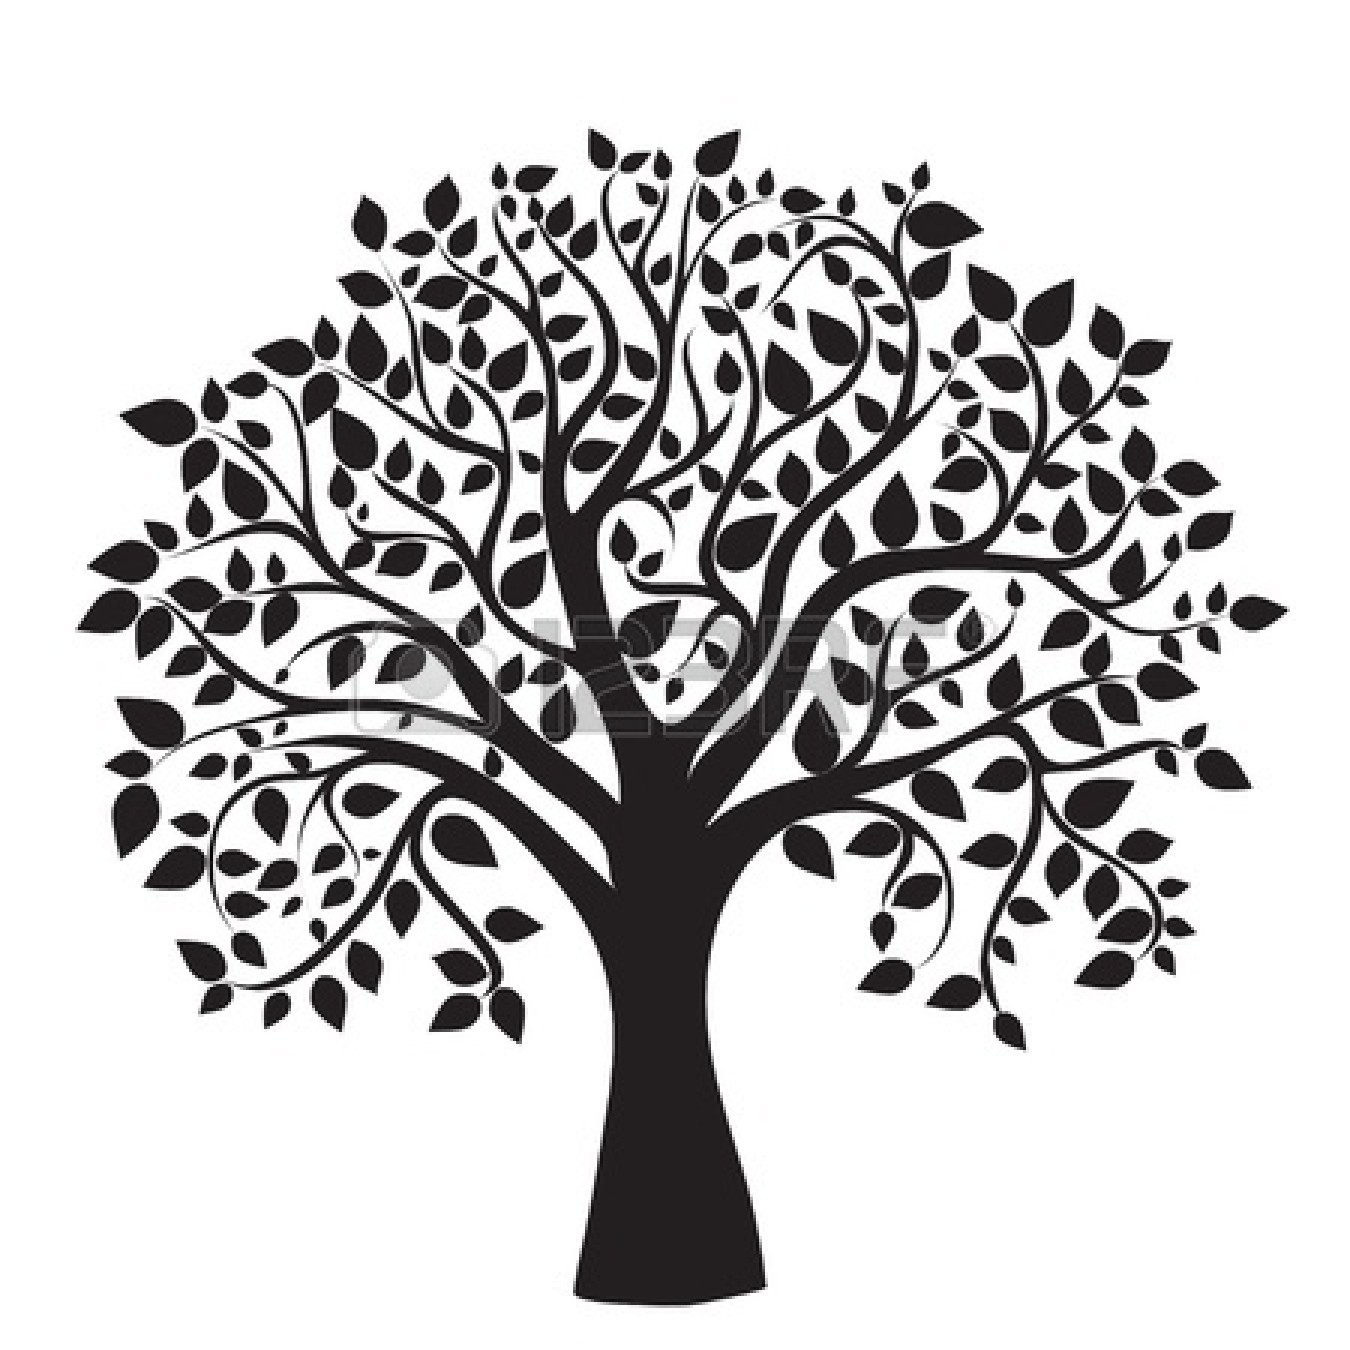 Free Family Tree Clip Clip Art Black And-Free Family Tree Clip Clip Art Black And White Family Tree Images-8